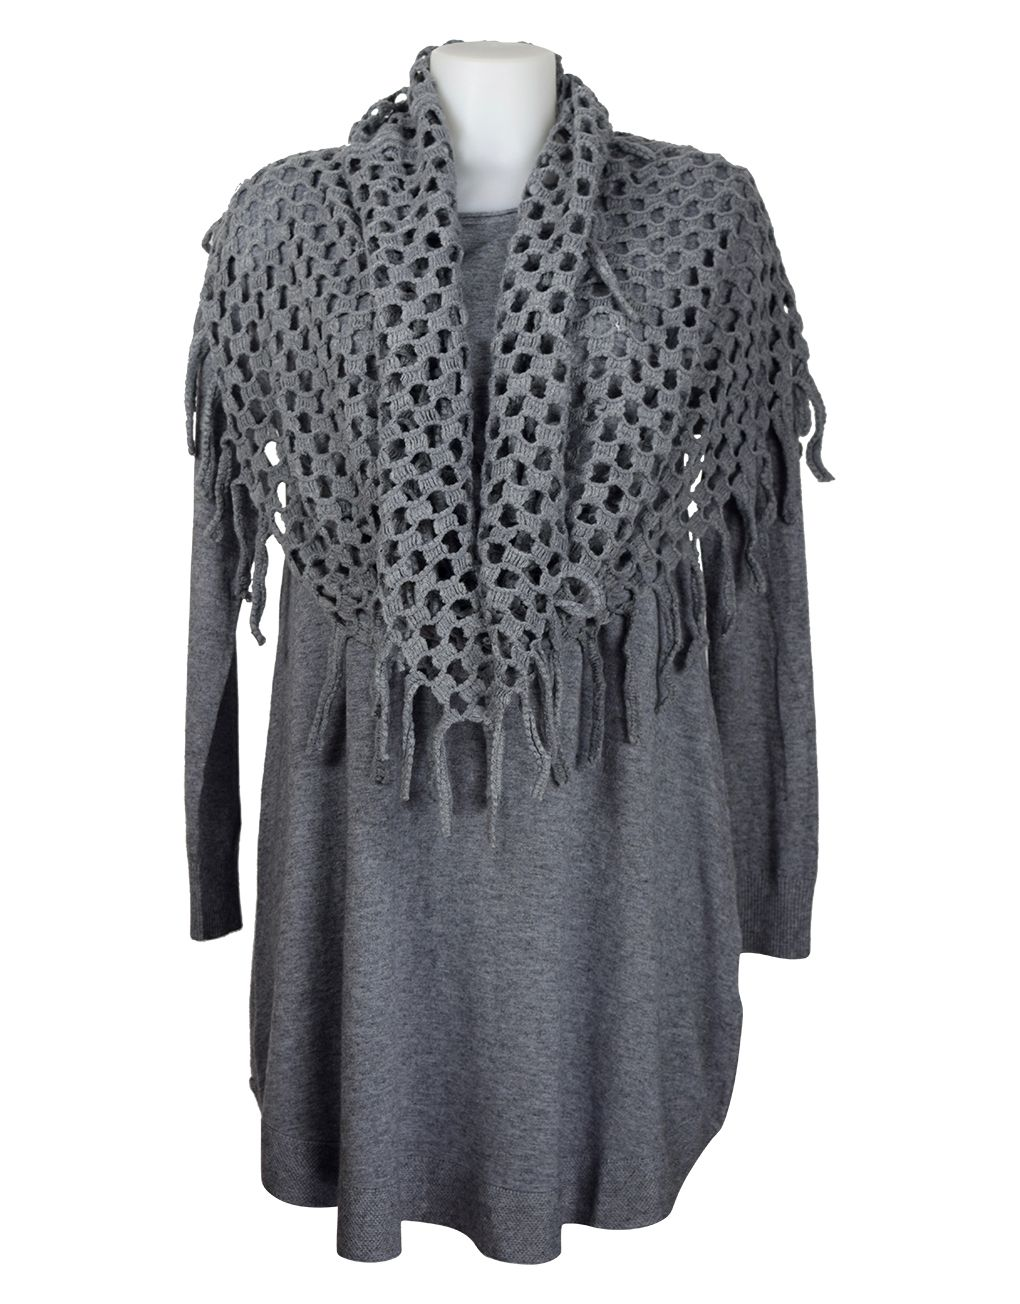 Fashion Fix Italian Grey Knitted Tunic With Snood/Scarf